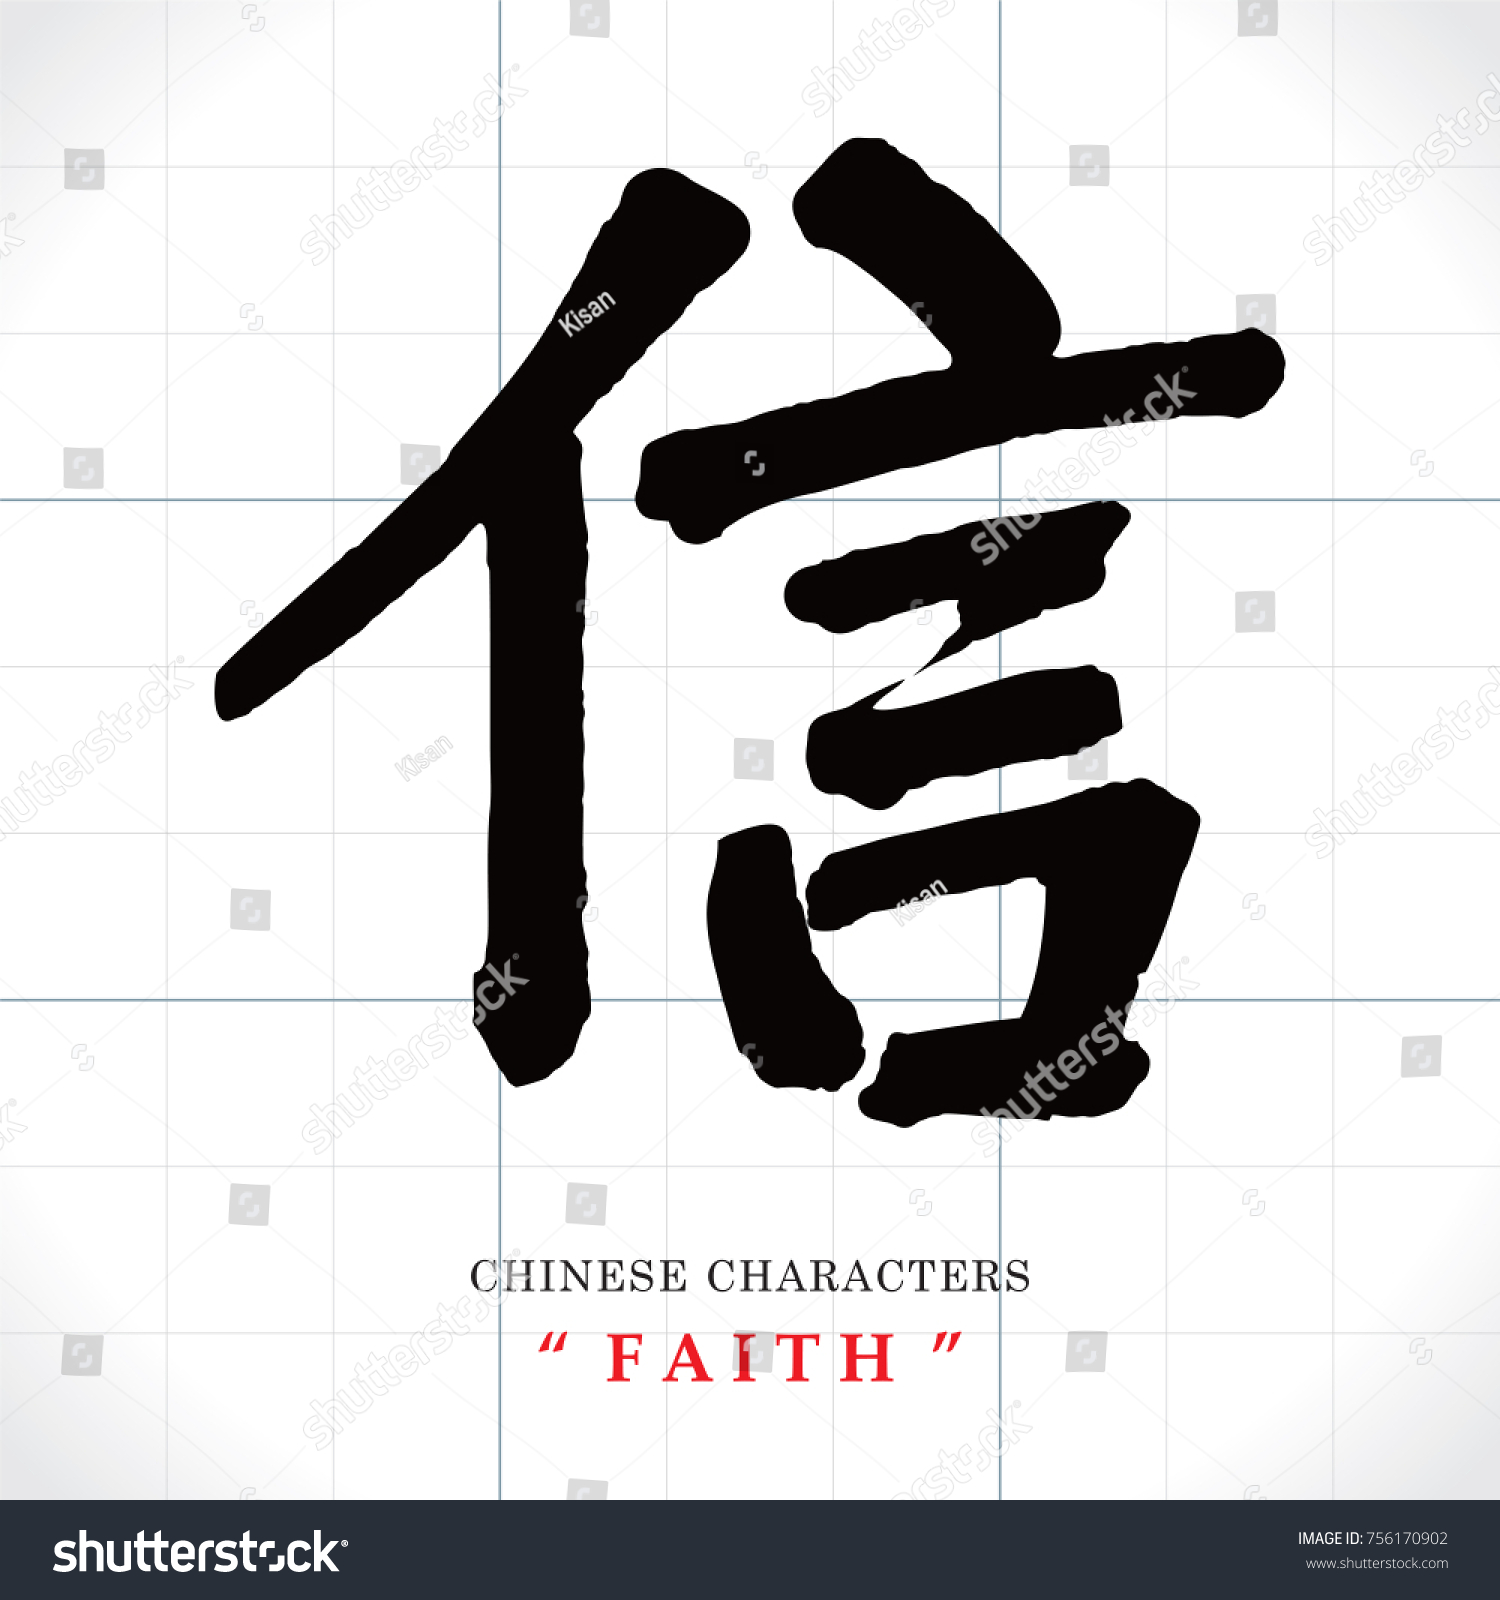 Vector chinese characters faith stock vector 756170902 shutterstock vector chinese characters faith biocorpaavc Images